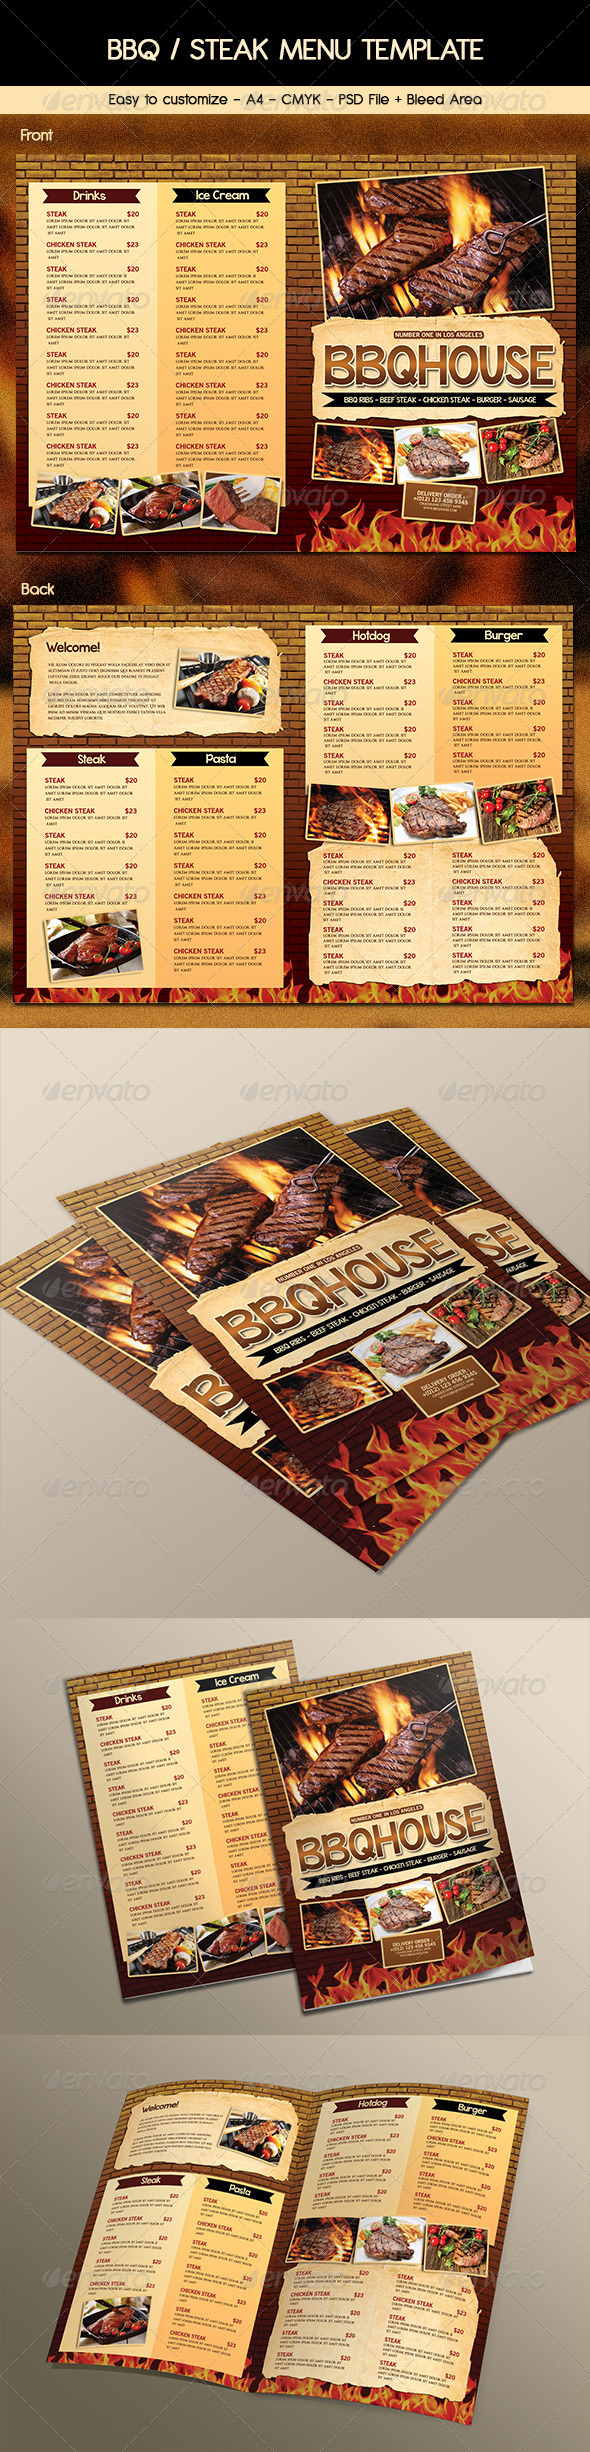 GraphicRiver BBQ Steak Menu 6934164